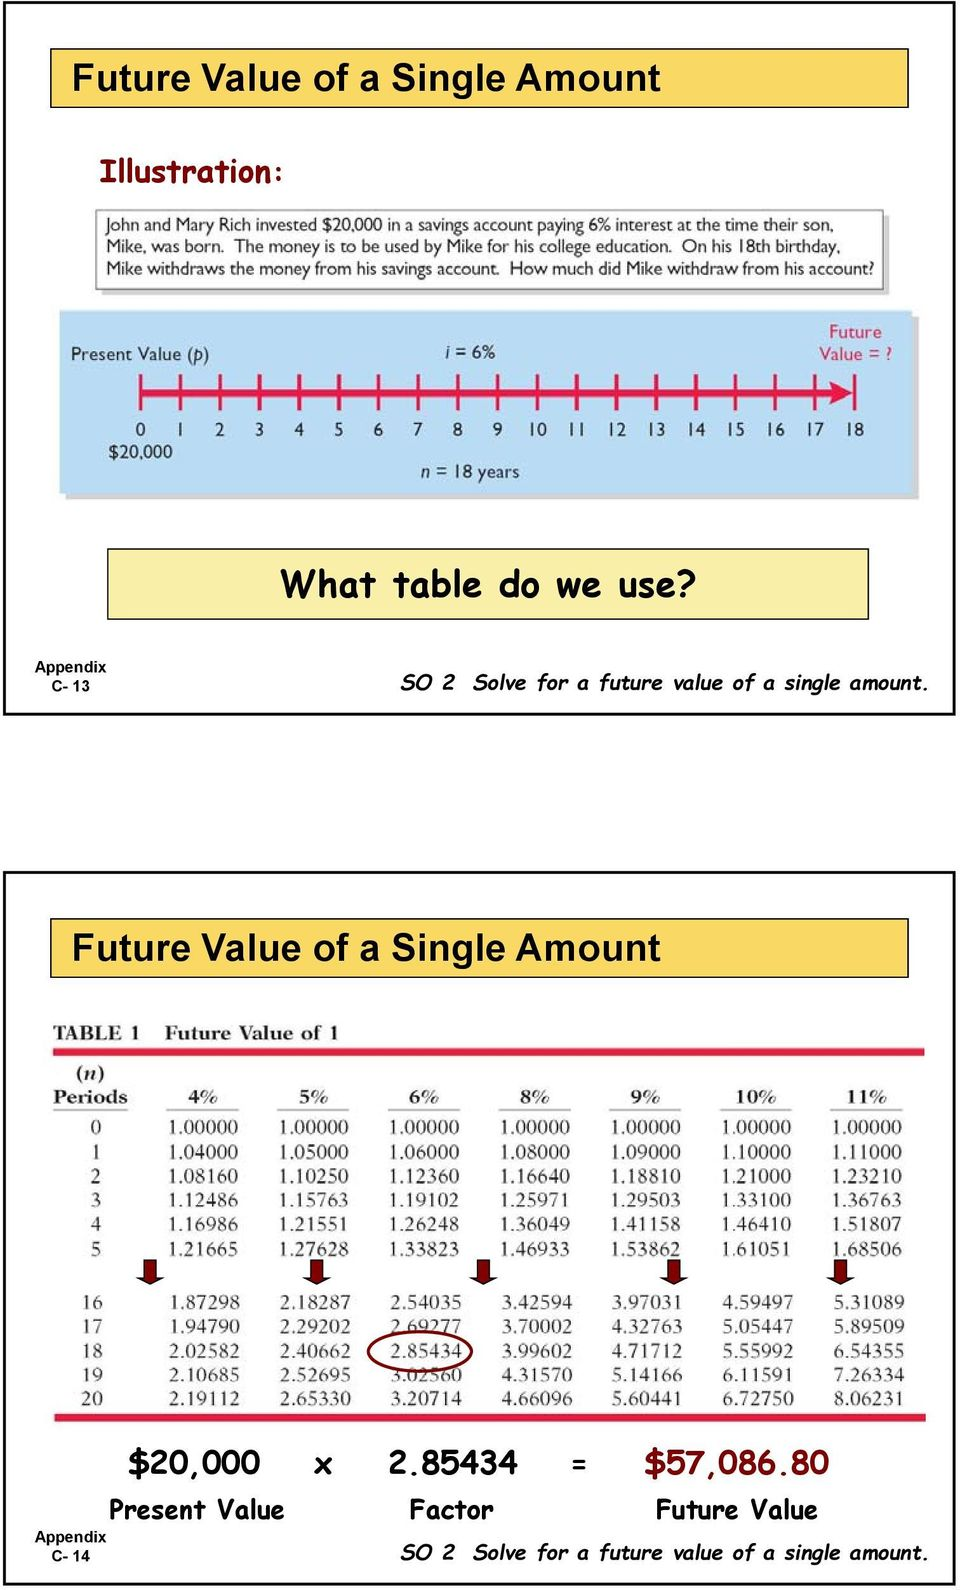 Future Value of a Single Amount C- 14 $20,000 x 2.85434 = $57,086.